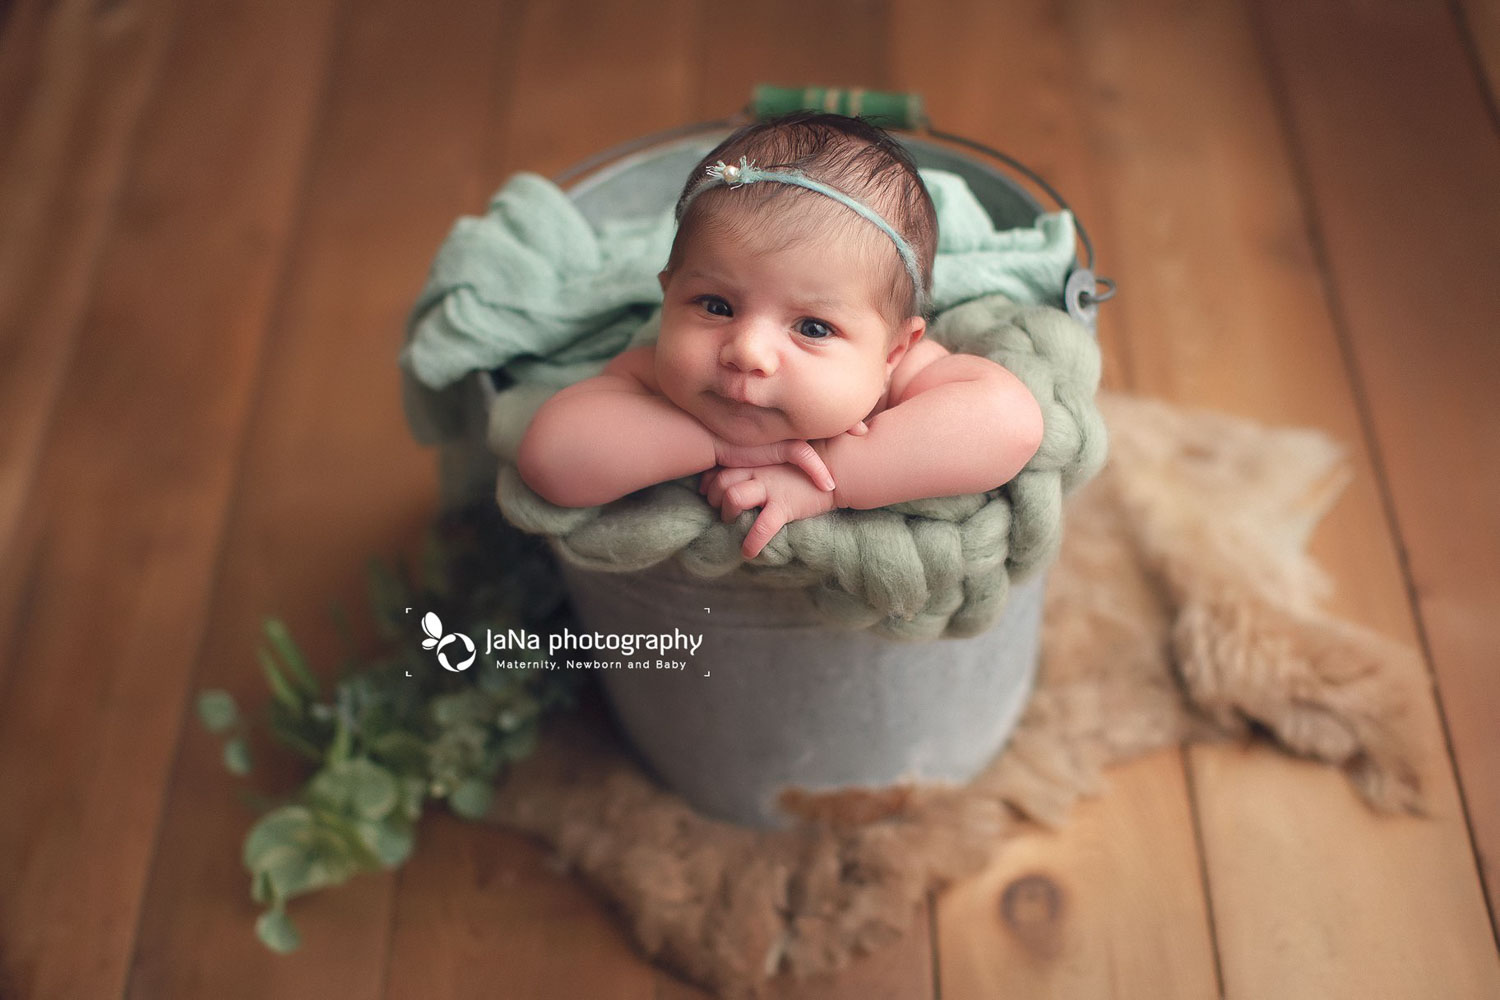 baby girl posing in a bucket with open eyes | jana photography